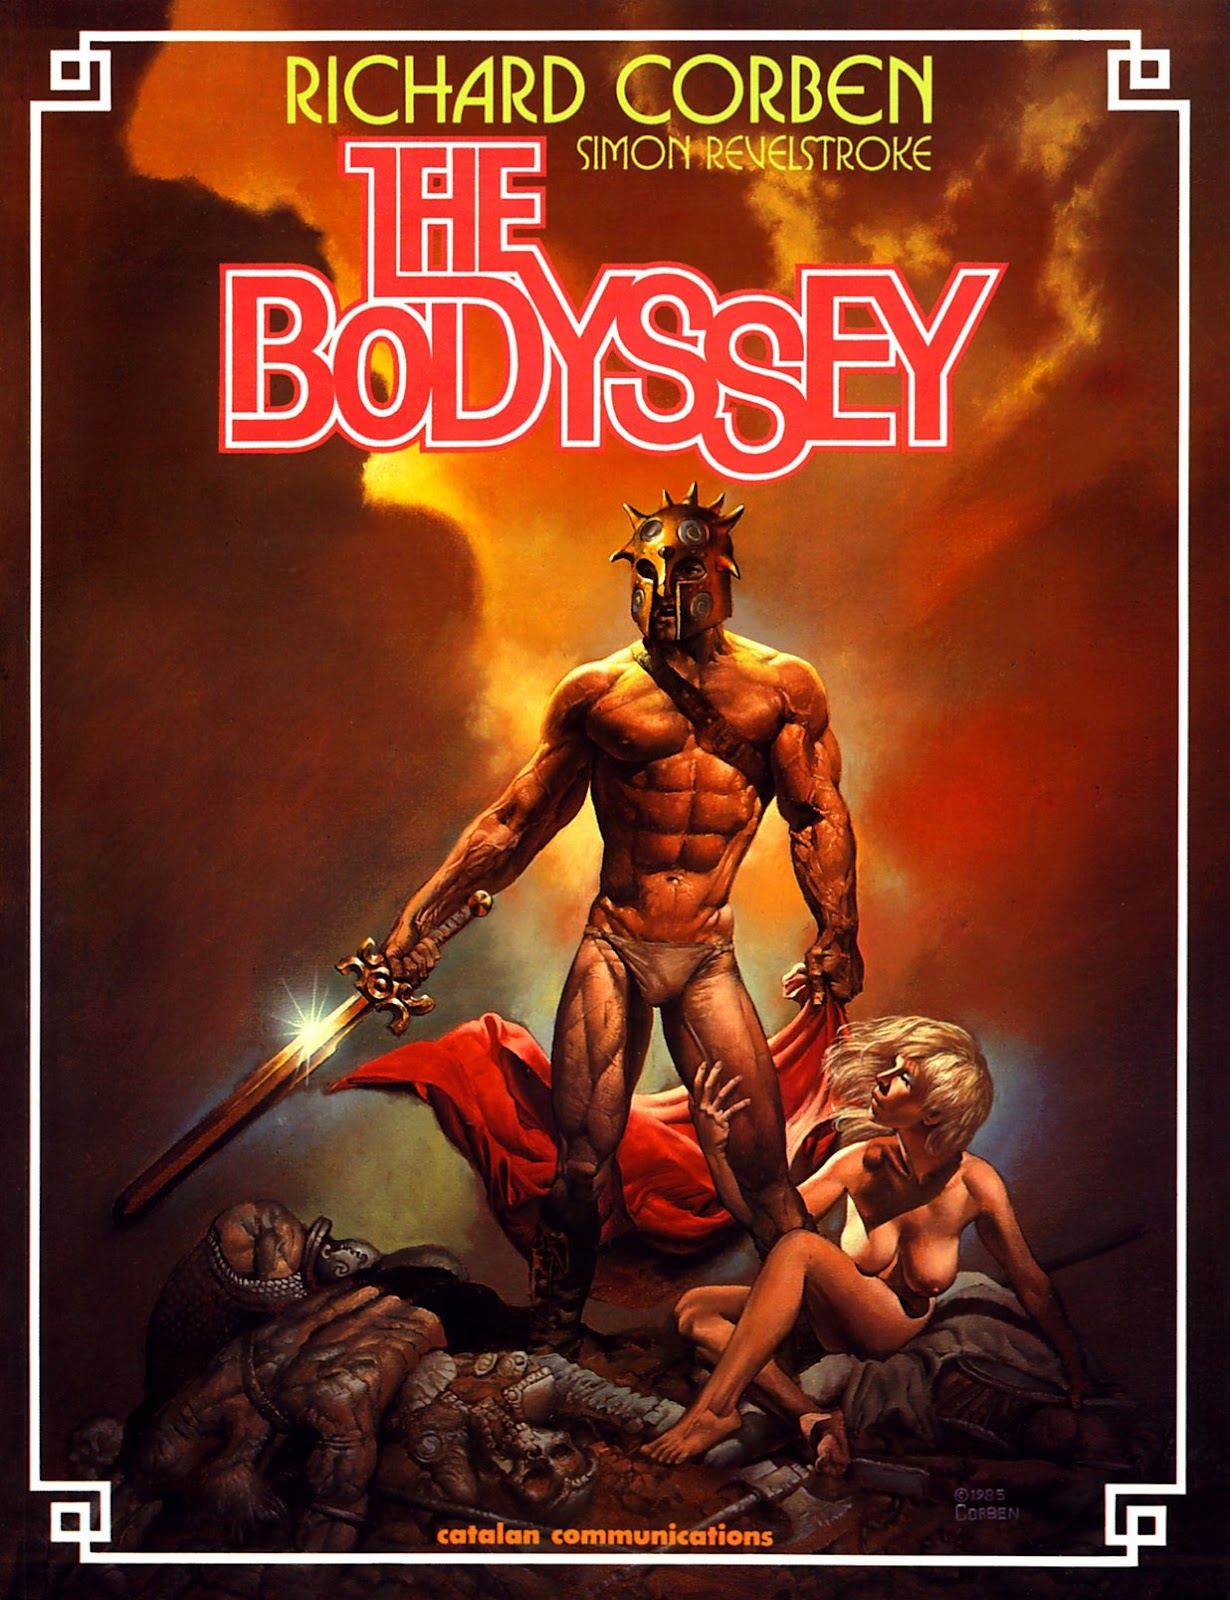 Read online The Bodyssey comic -  Issue # Full - 1